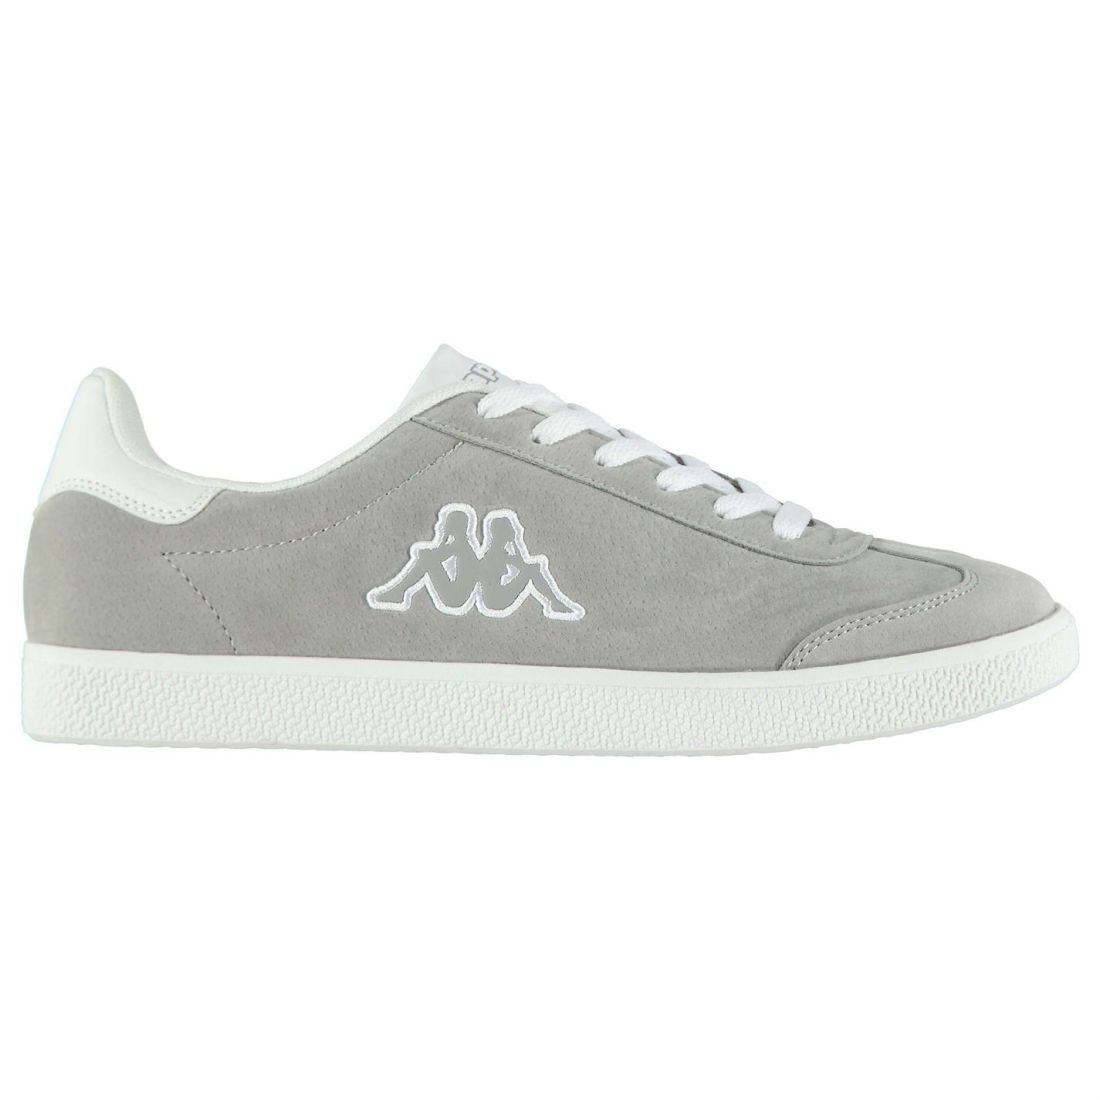 50923445d85 Image is loading Kappa-Mens-Valle-Trainers-Low-Lace-Up-Suede